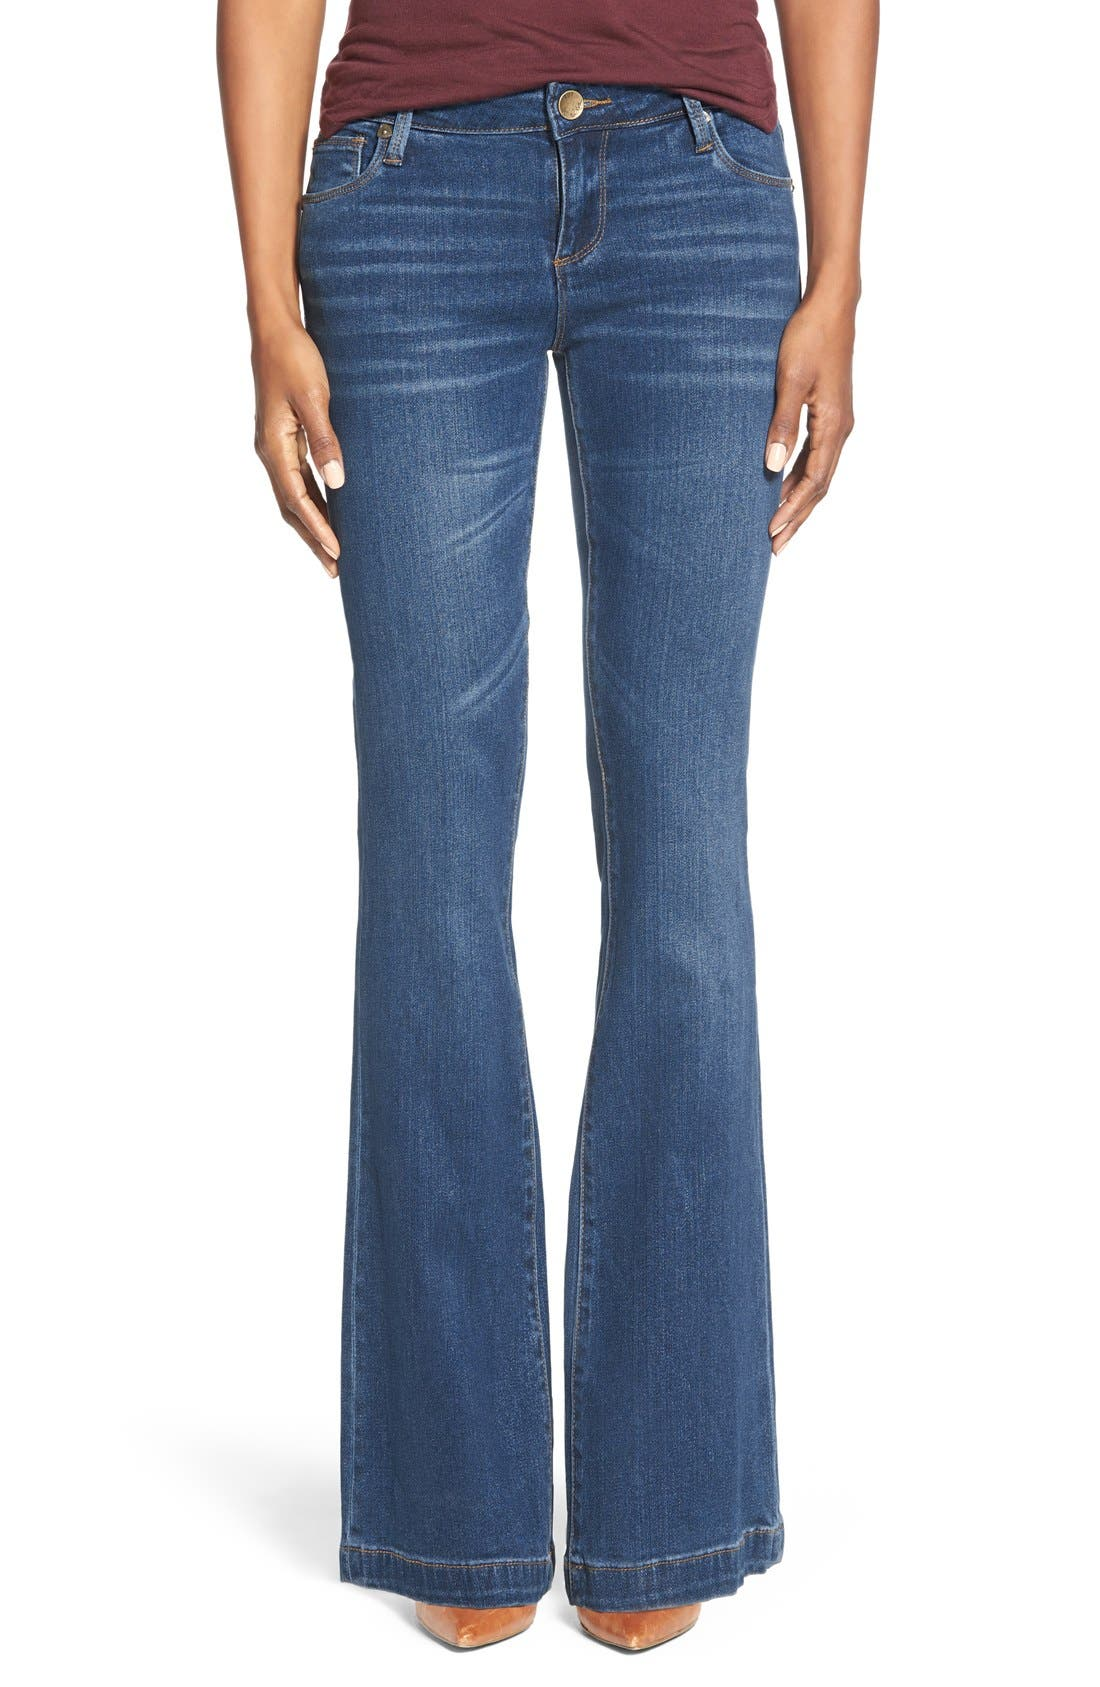 Alternate Image 1 Selected - KUT from the Kloth 'Chrissy' Stretch Flare Leg Jeans (Inclusion)